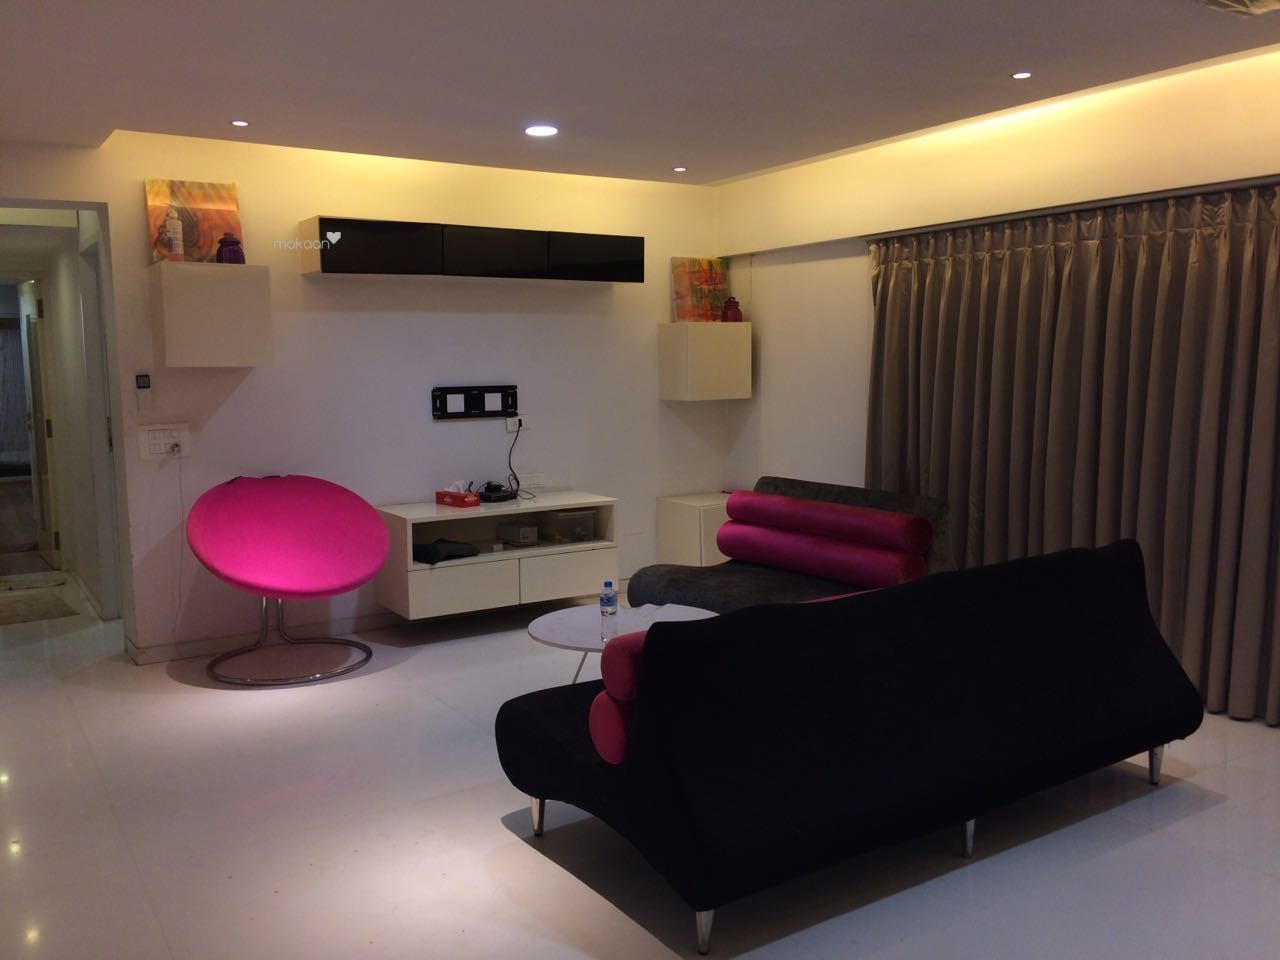 2800 sq ft 4BHK 4BHK+3T (2,800 sq ft) + Study Room Property By Global Real Estate Consultants In Project, Saint Cyril Road